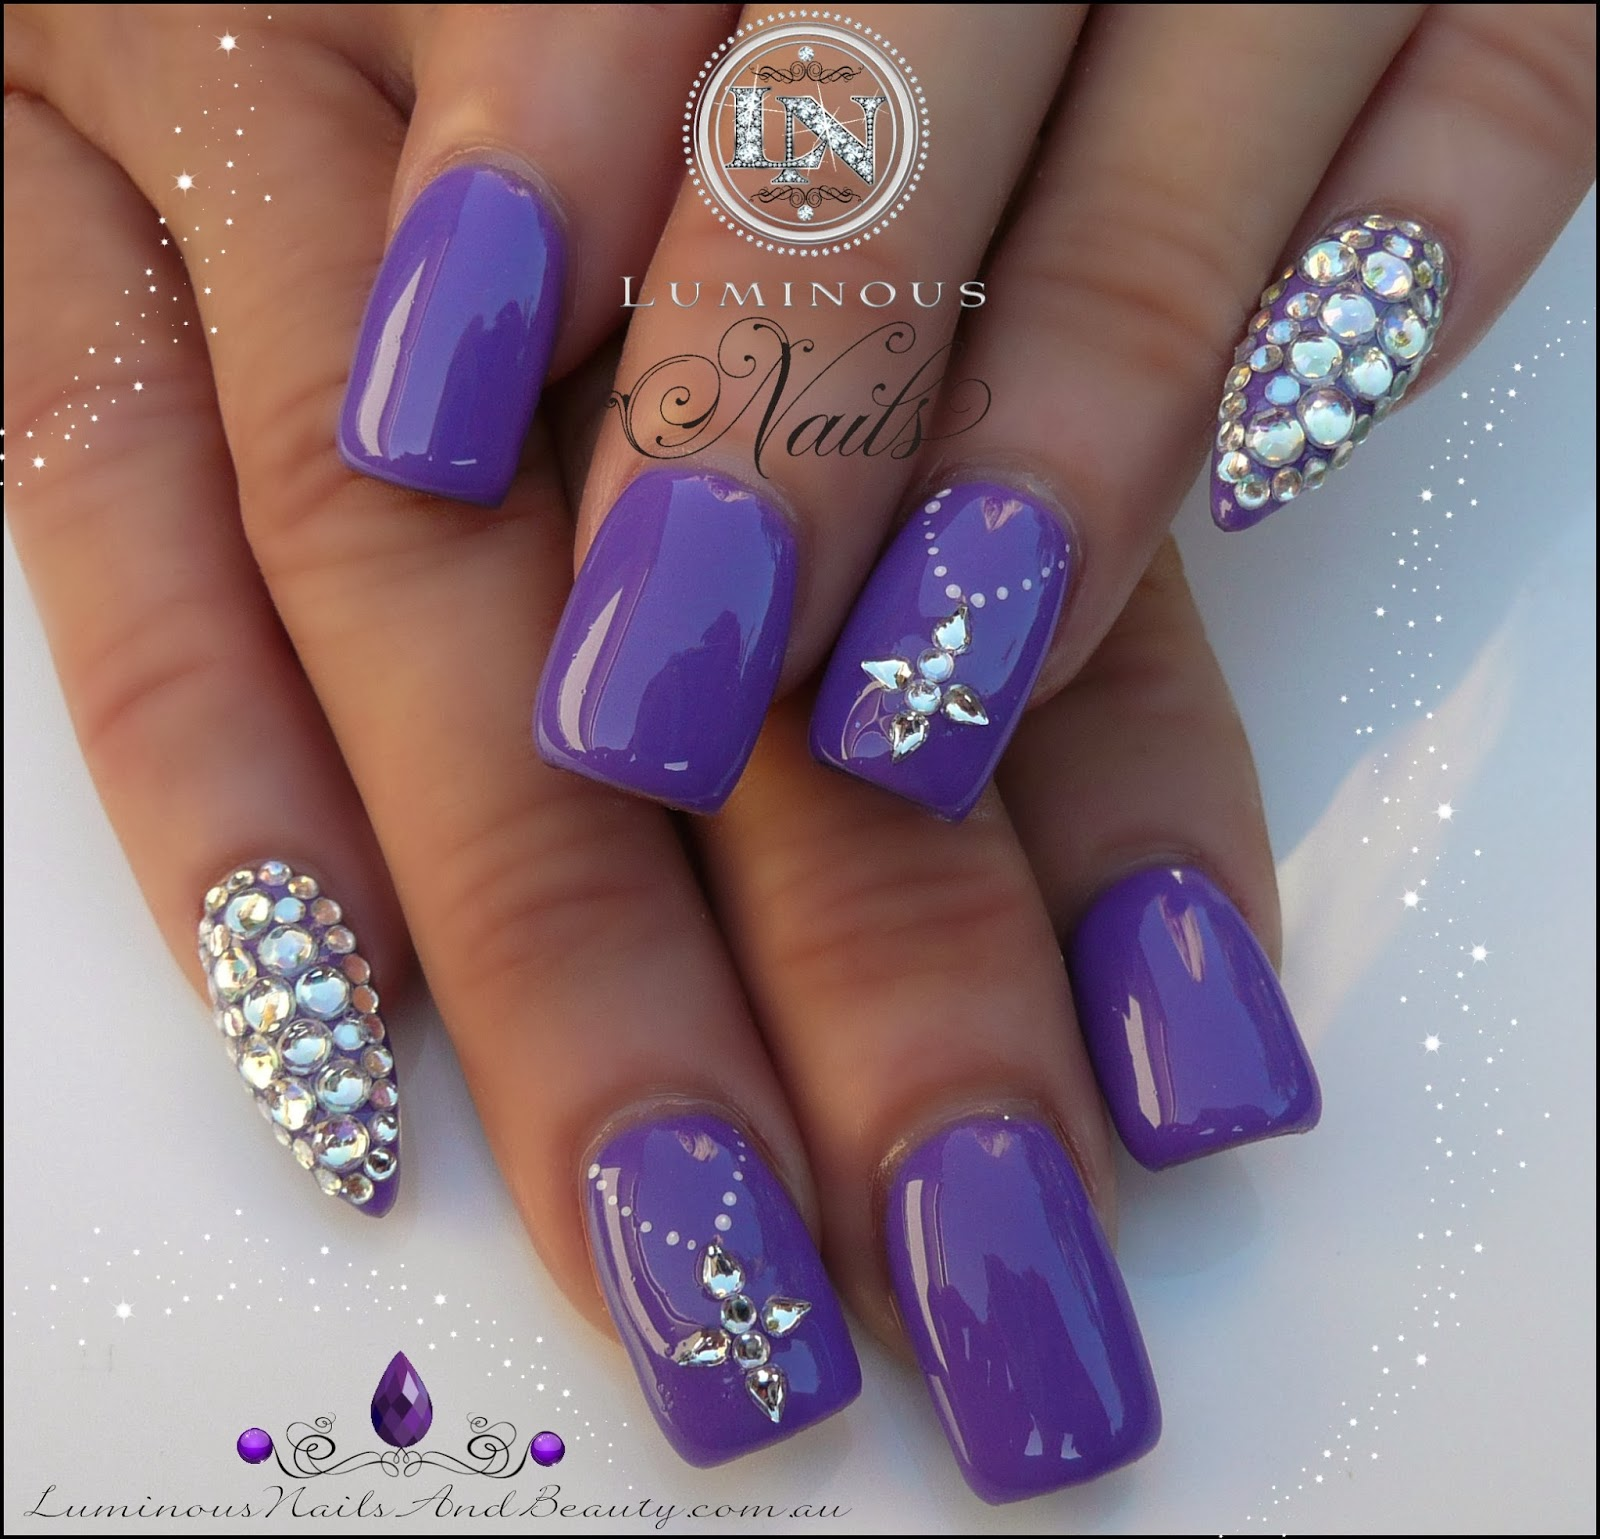 Indigo Violet Nails with Crystal Pointy Pinkies...